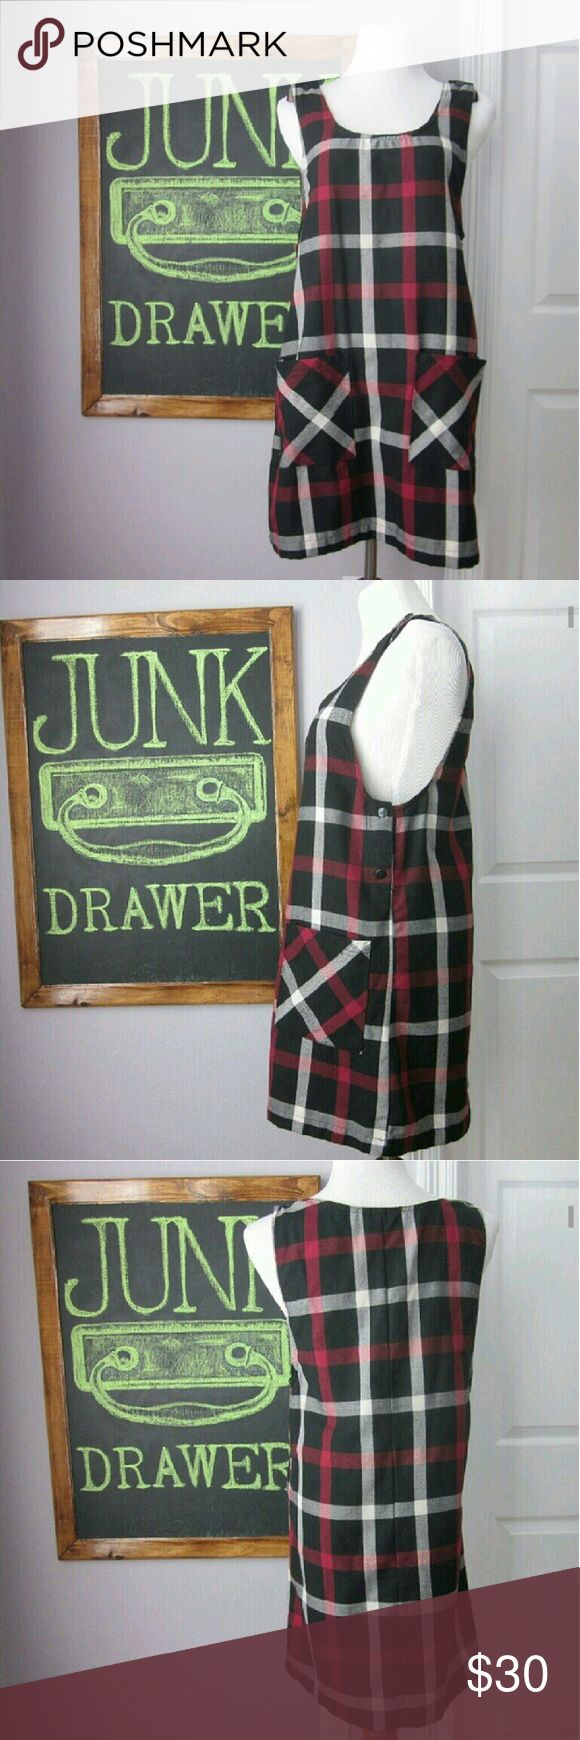 """Vintage Plaid Pinafore Jumper Dress Sm Gently worn - great condition! So cute for fall. 90s schoolgirl look. Missing a button under Lee arm (pic 2 it would be between the 2 You see). You could leave it... Would never notice OR use one of the extra buttons in straps to replace. Straps have 2 buttons each to choose length best for you. 65% poly 35% rayon. Pennylane brand. Bust 19"""". Length 33.5""""  Bundle for best deals! Hundreds of items available for discounted bundles!   Instagram…"""